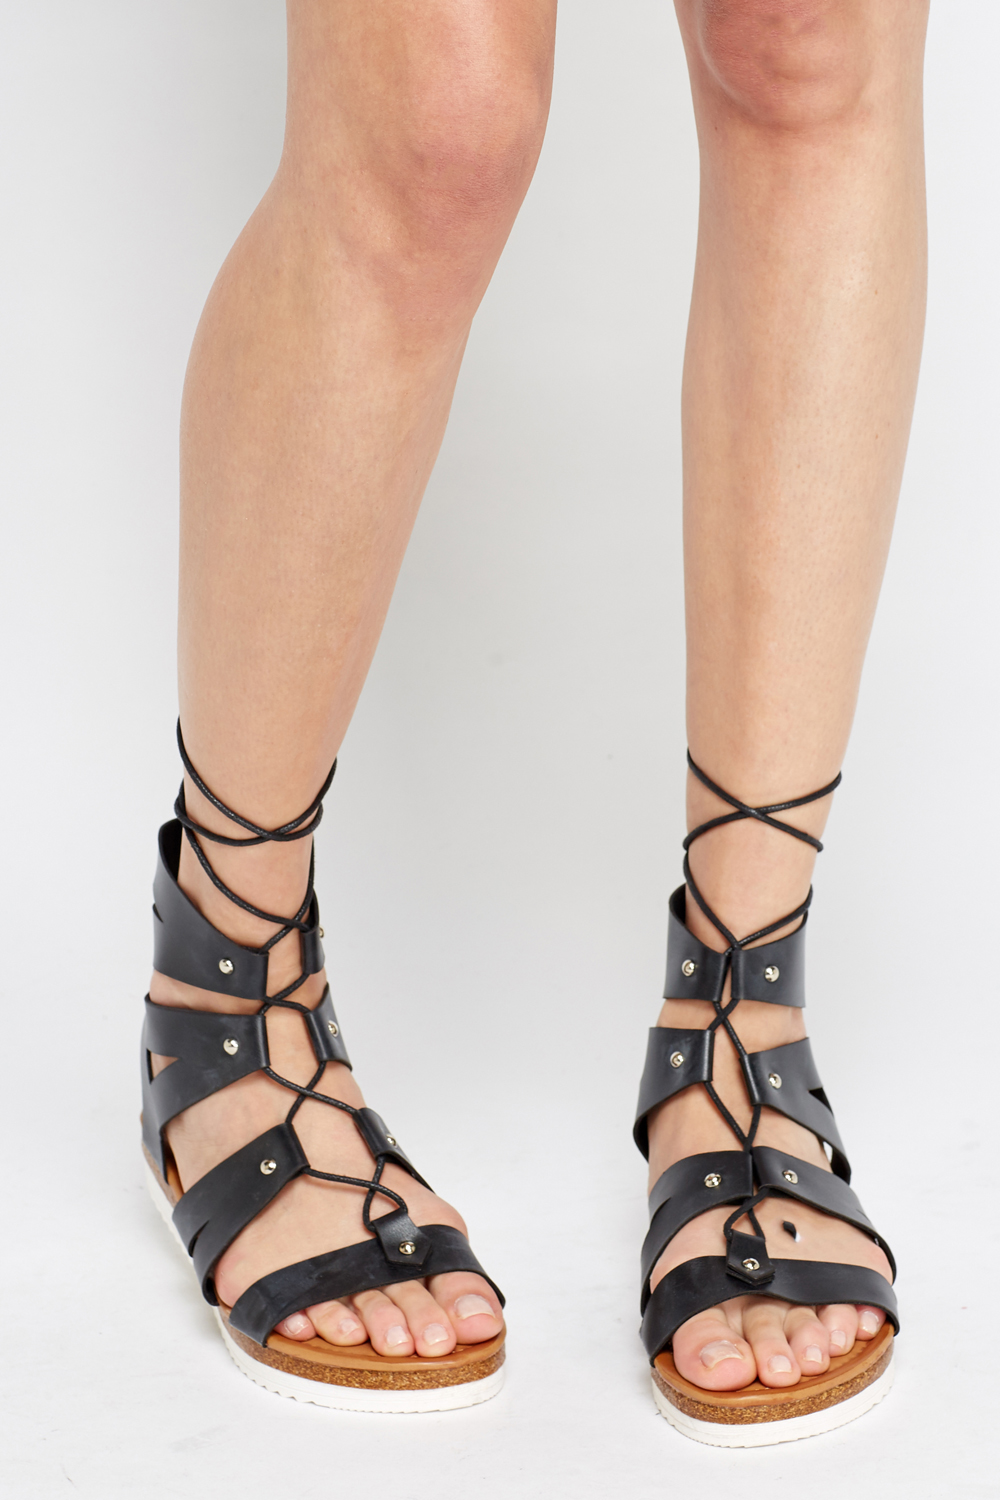 Strappy Tie Back Sandals Black Or White Just 163 5